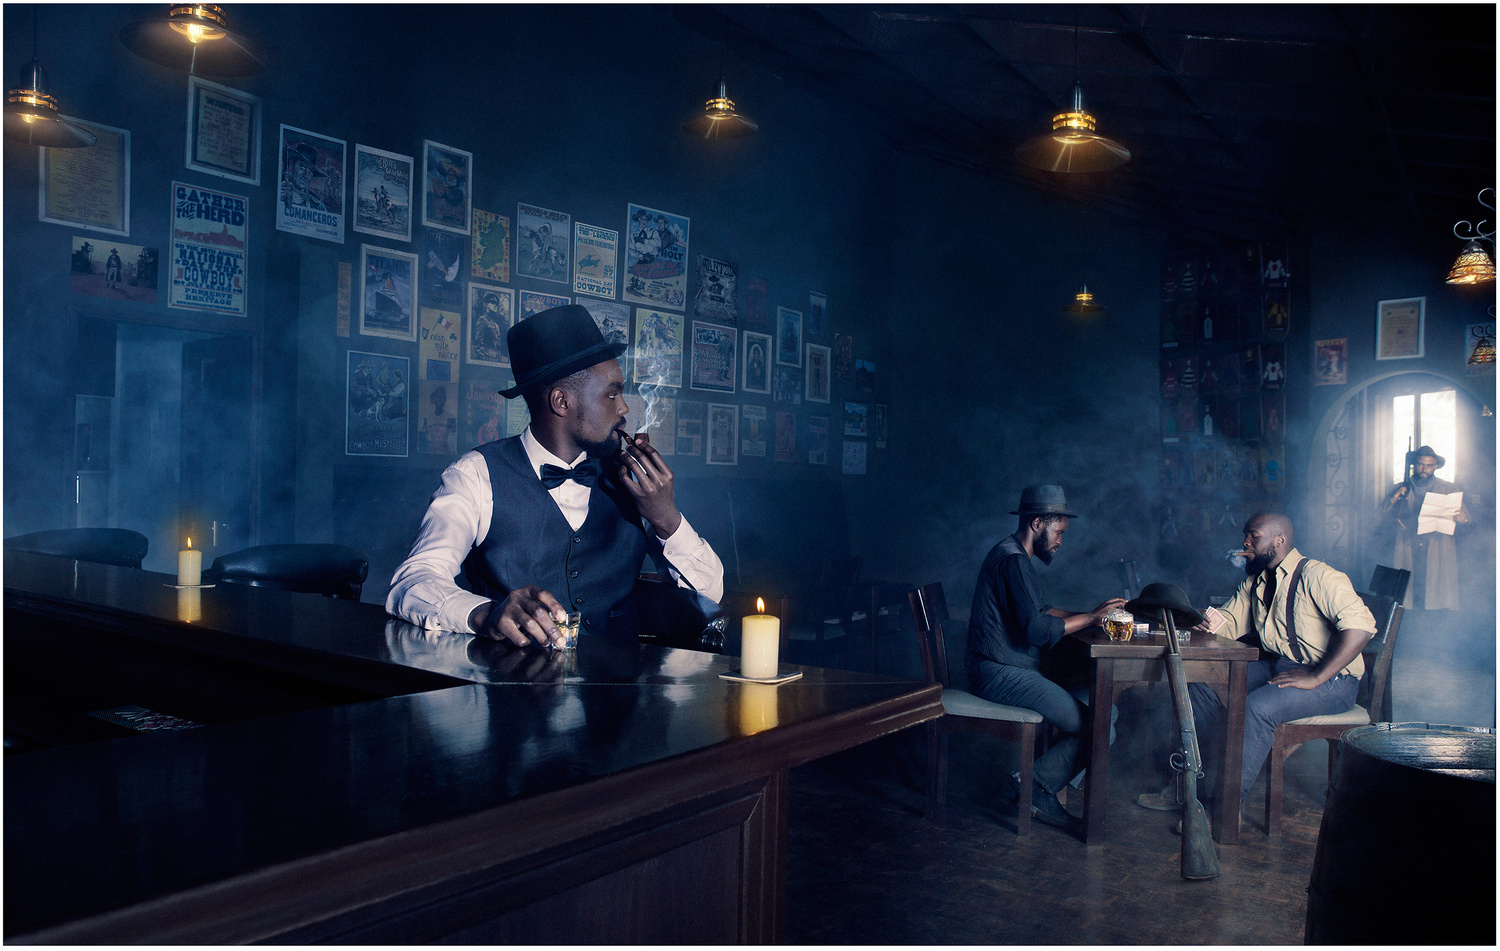 The Saloon by Kamau Patrick